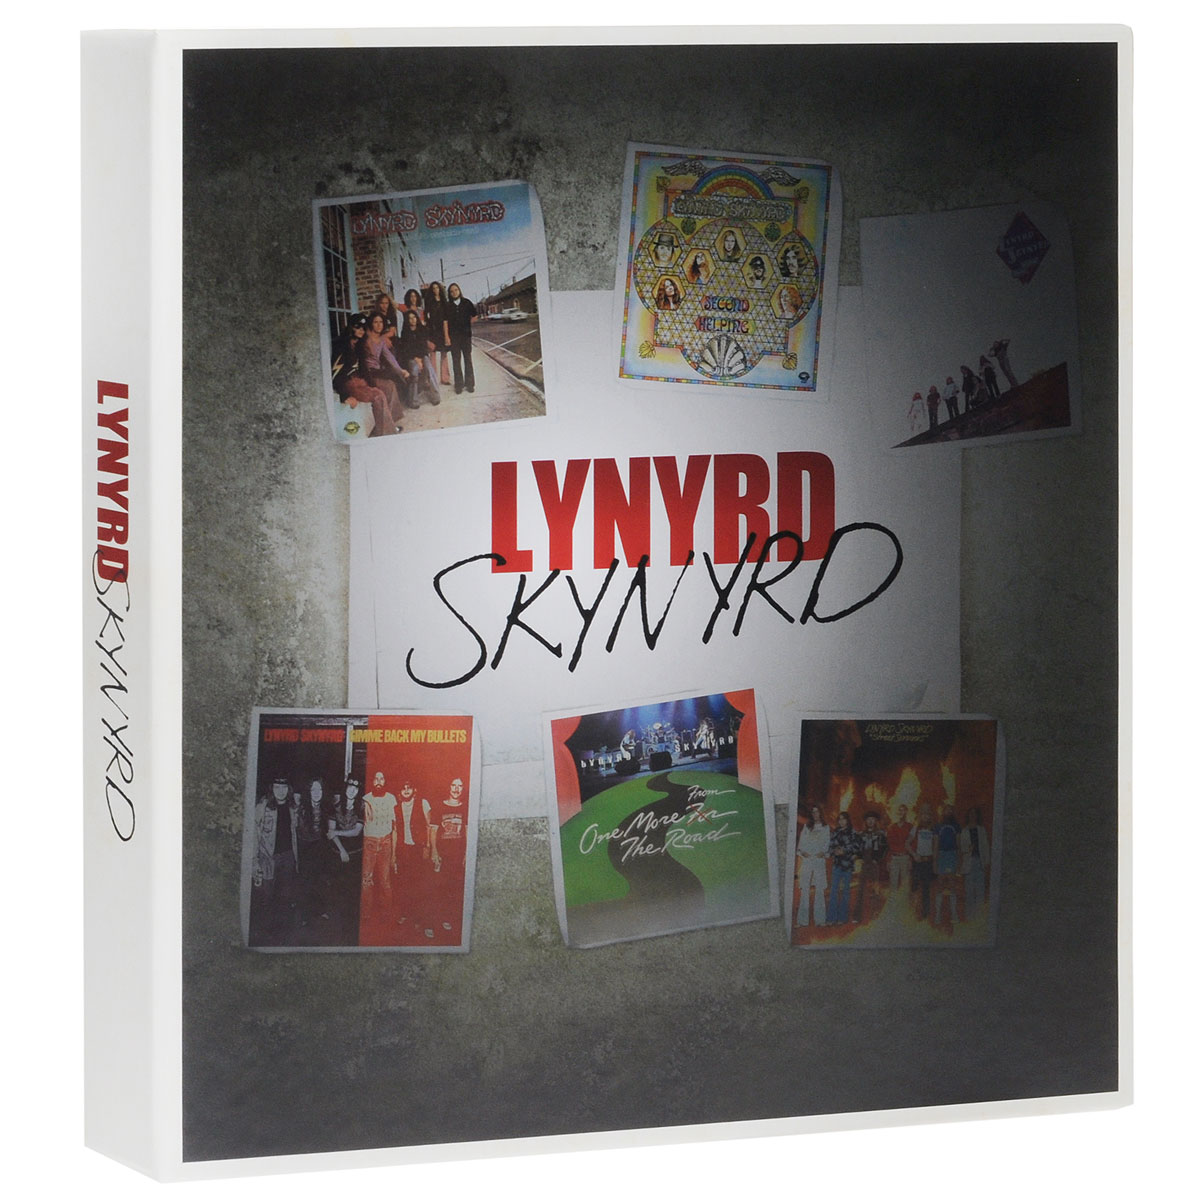 Lynyrd Skynyrd Lynyrd Skynyrd (7 LP) the black crowes the black crowes three snakes and one charm 2 lp